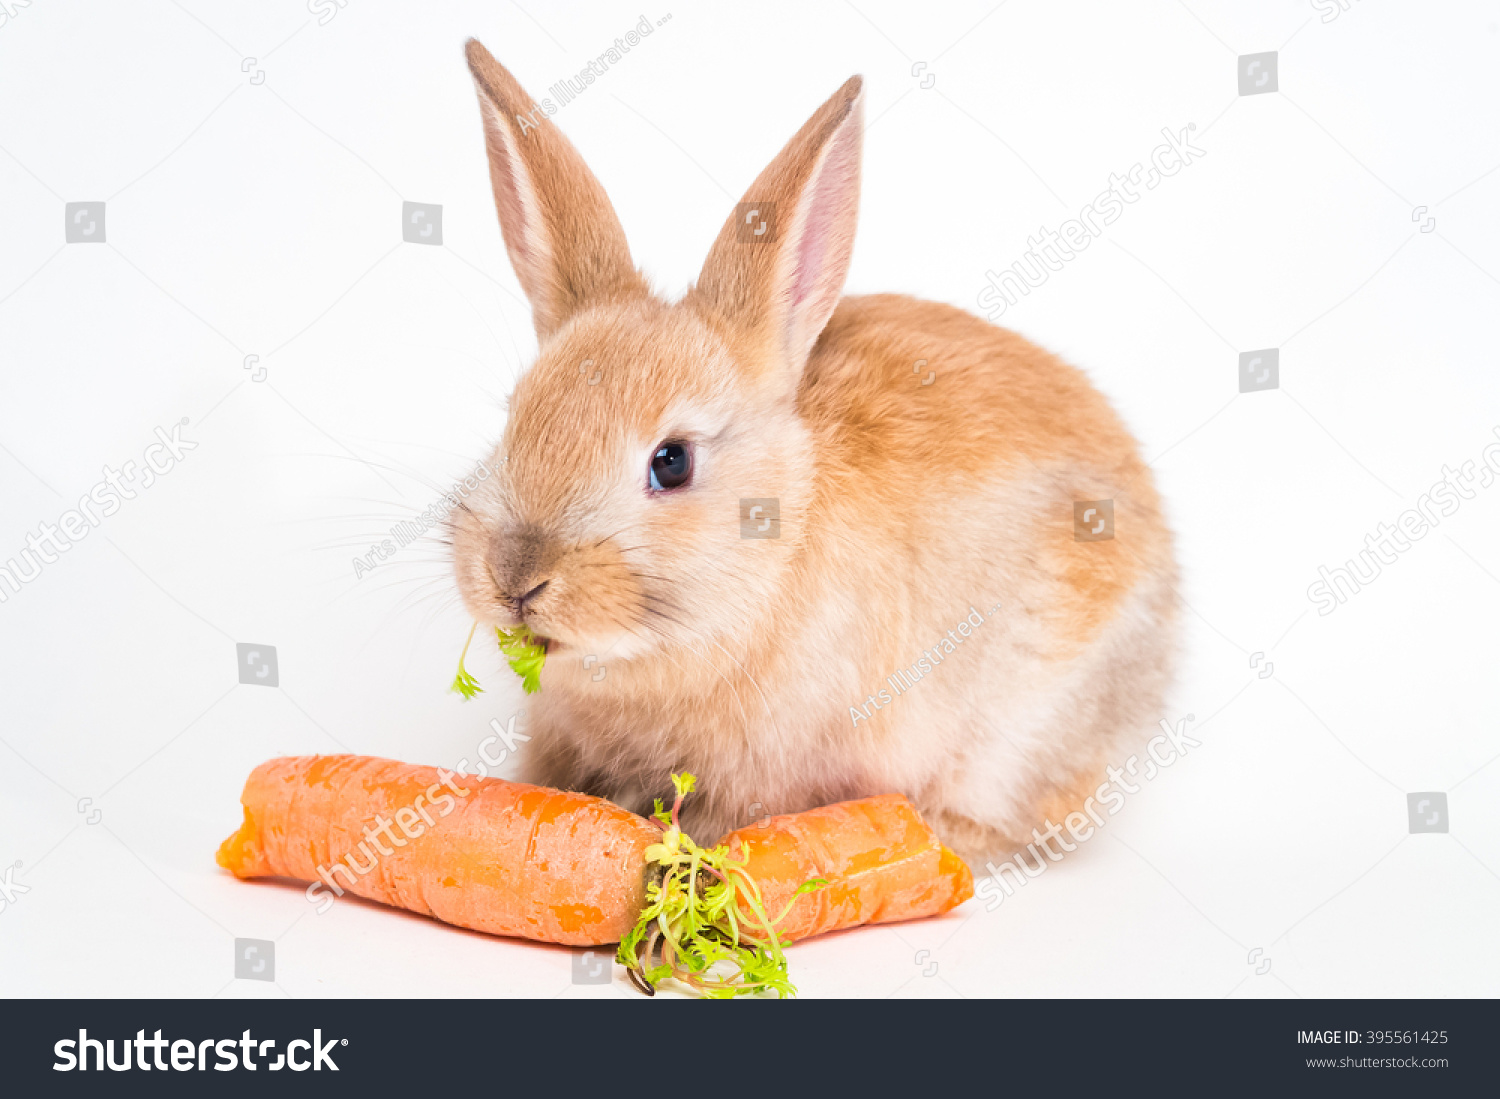 Russian easter bunny eating huge carrot